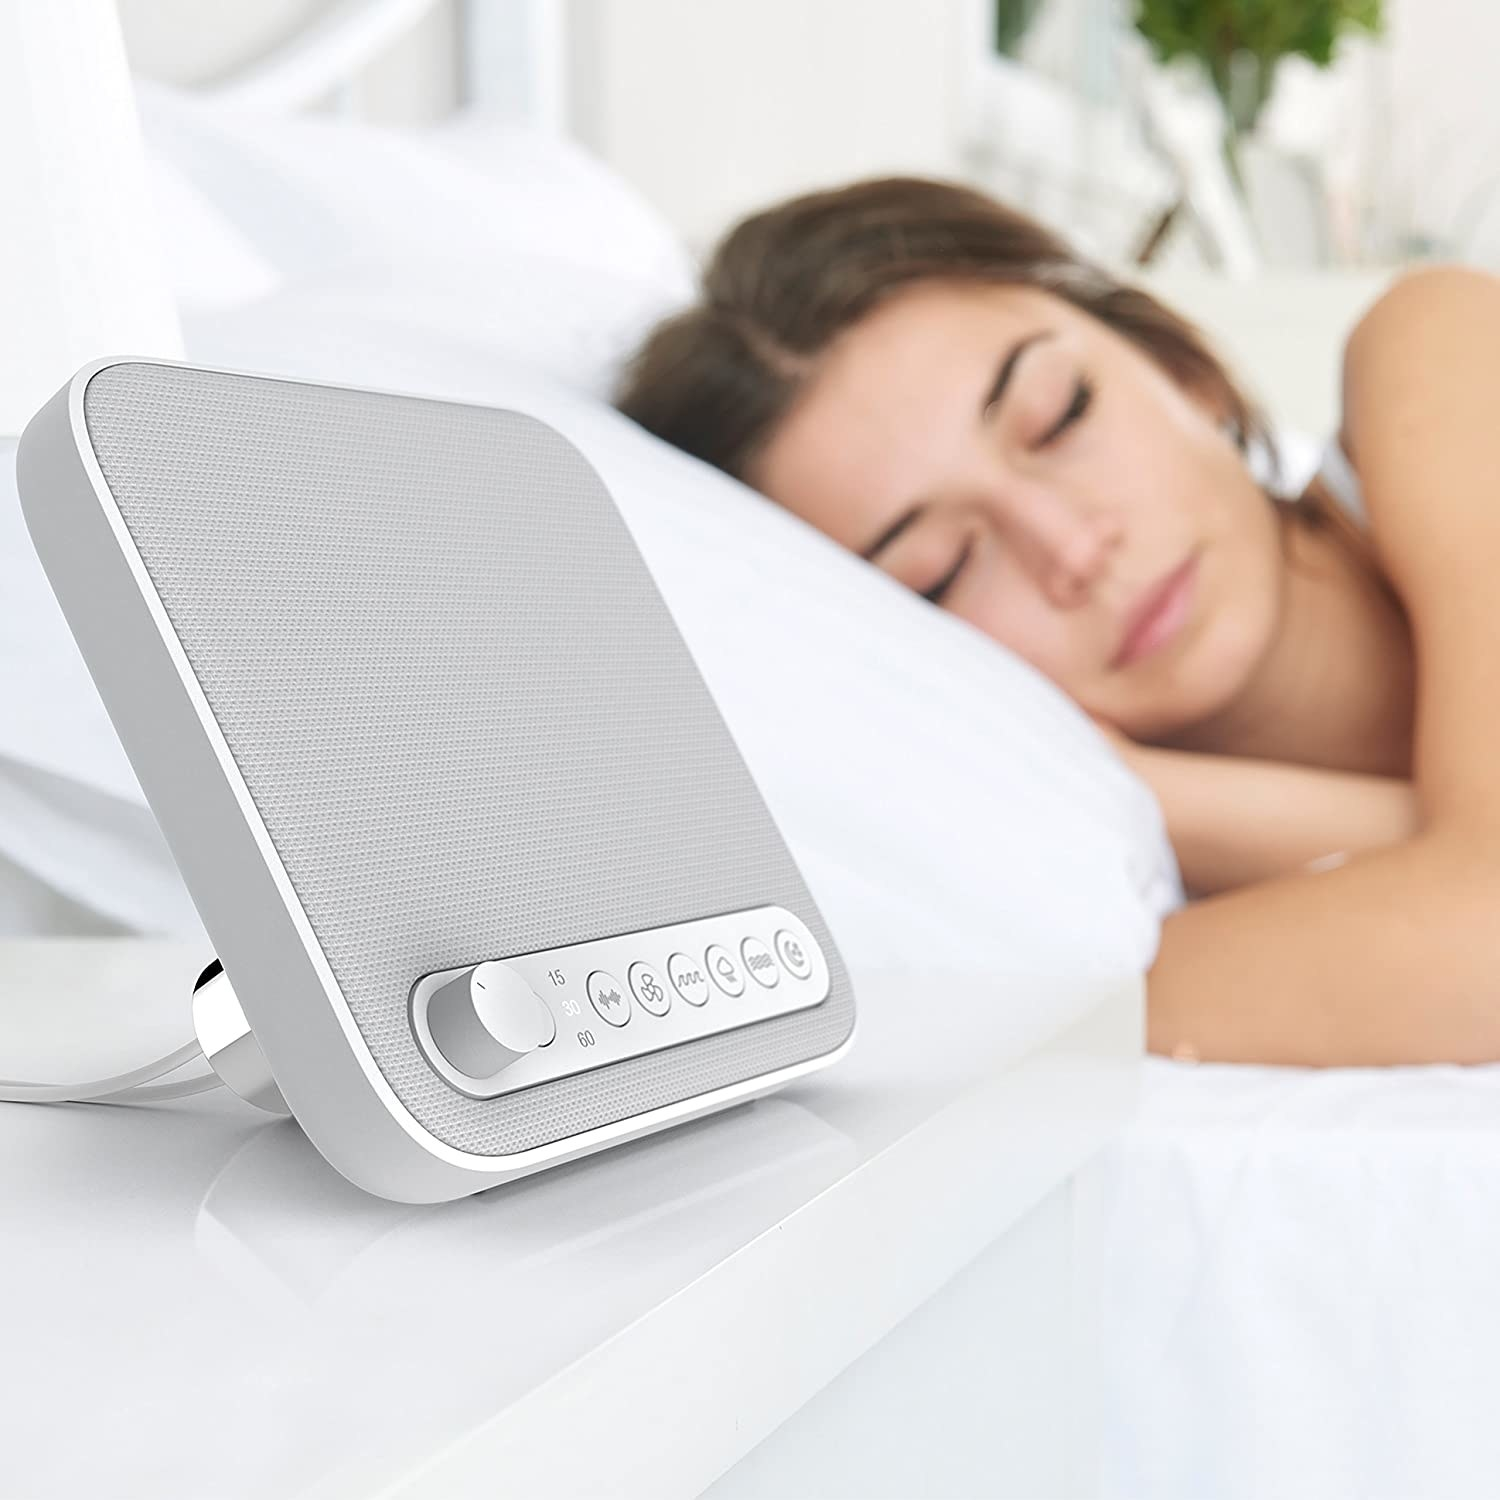 A person sleeping next to the white noise machine